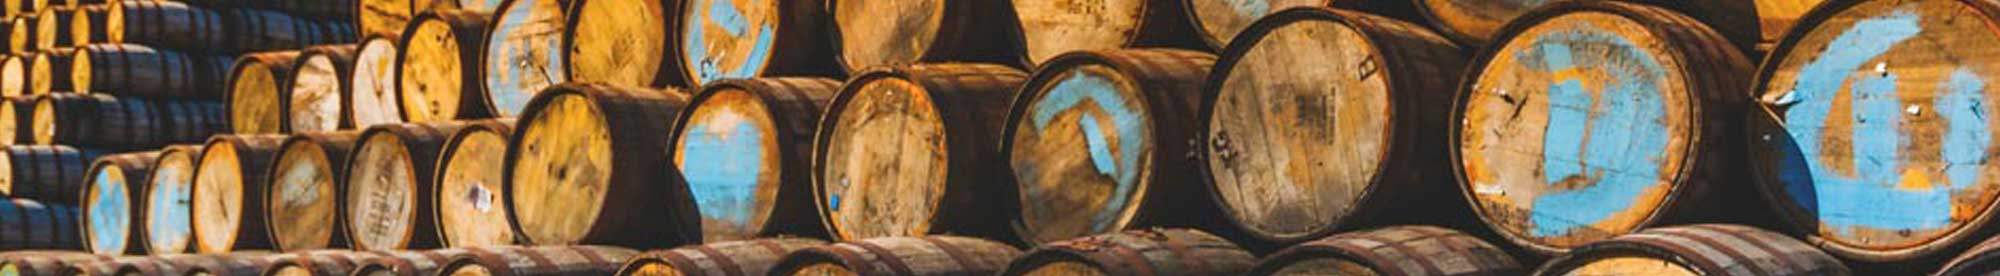 Whisky-Cask-Investment